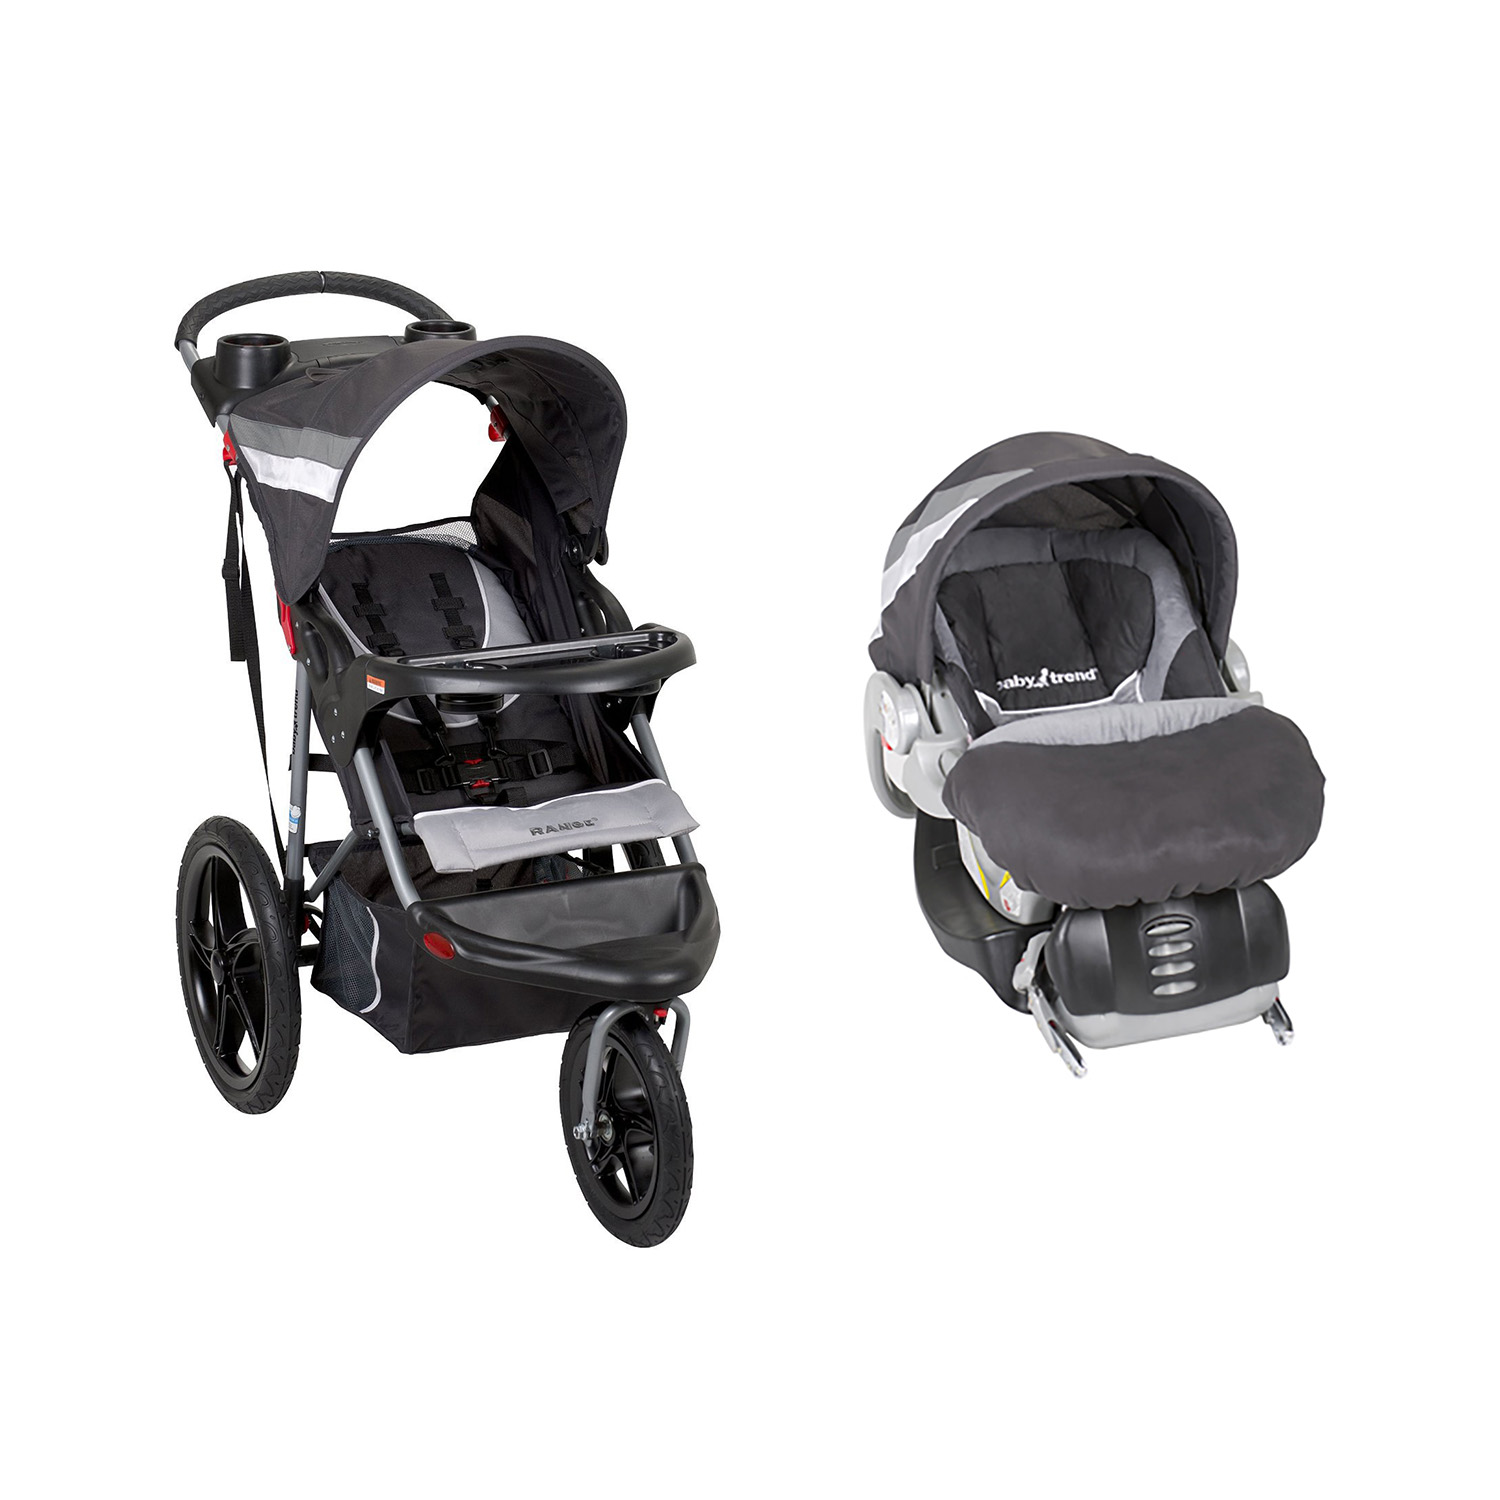 baby trend range jogging stroller and infant car seat travel system liberty ebay. Black Bedroom Furniture Sets. Home Design Ideas